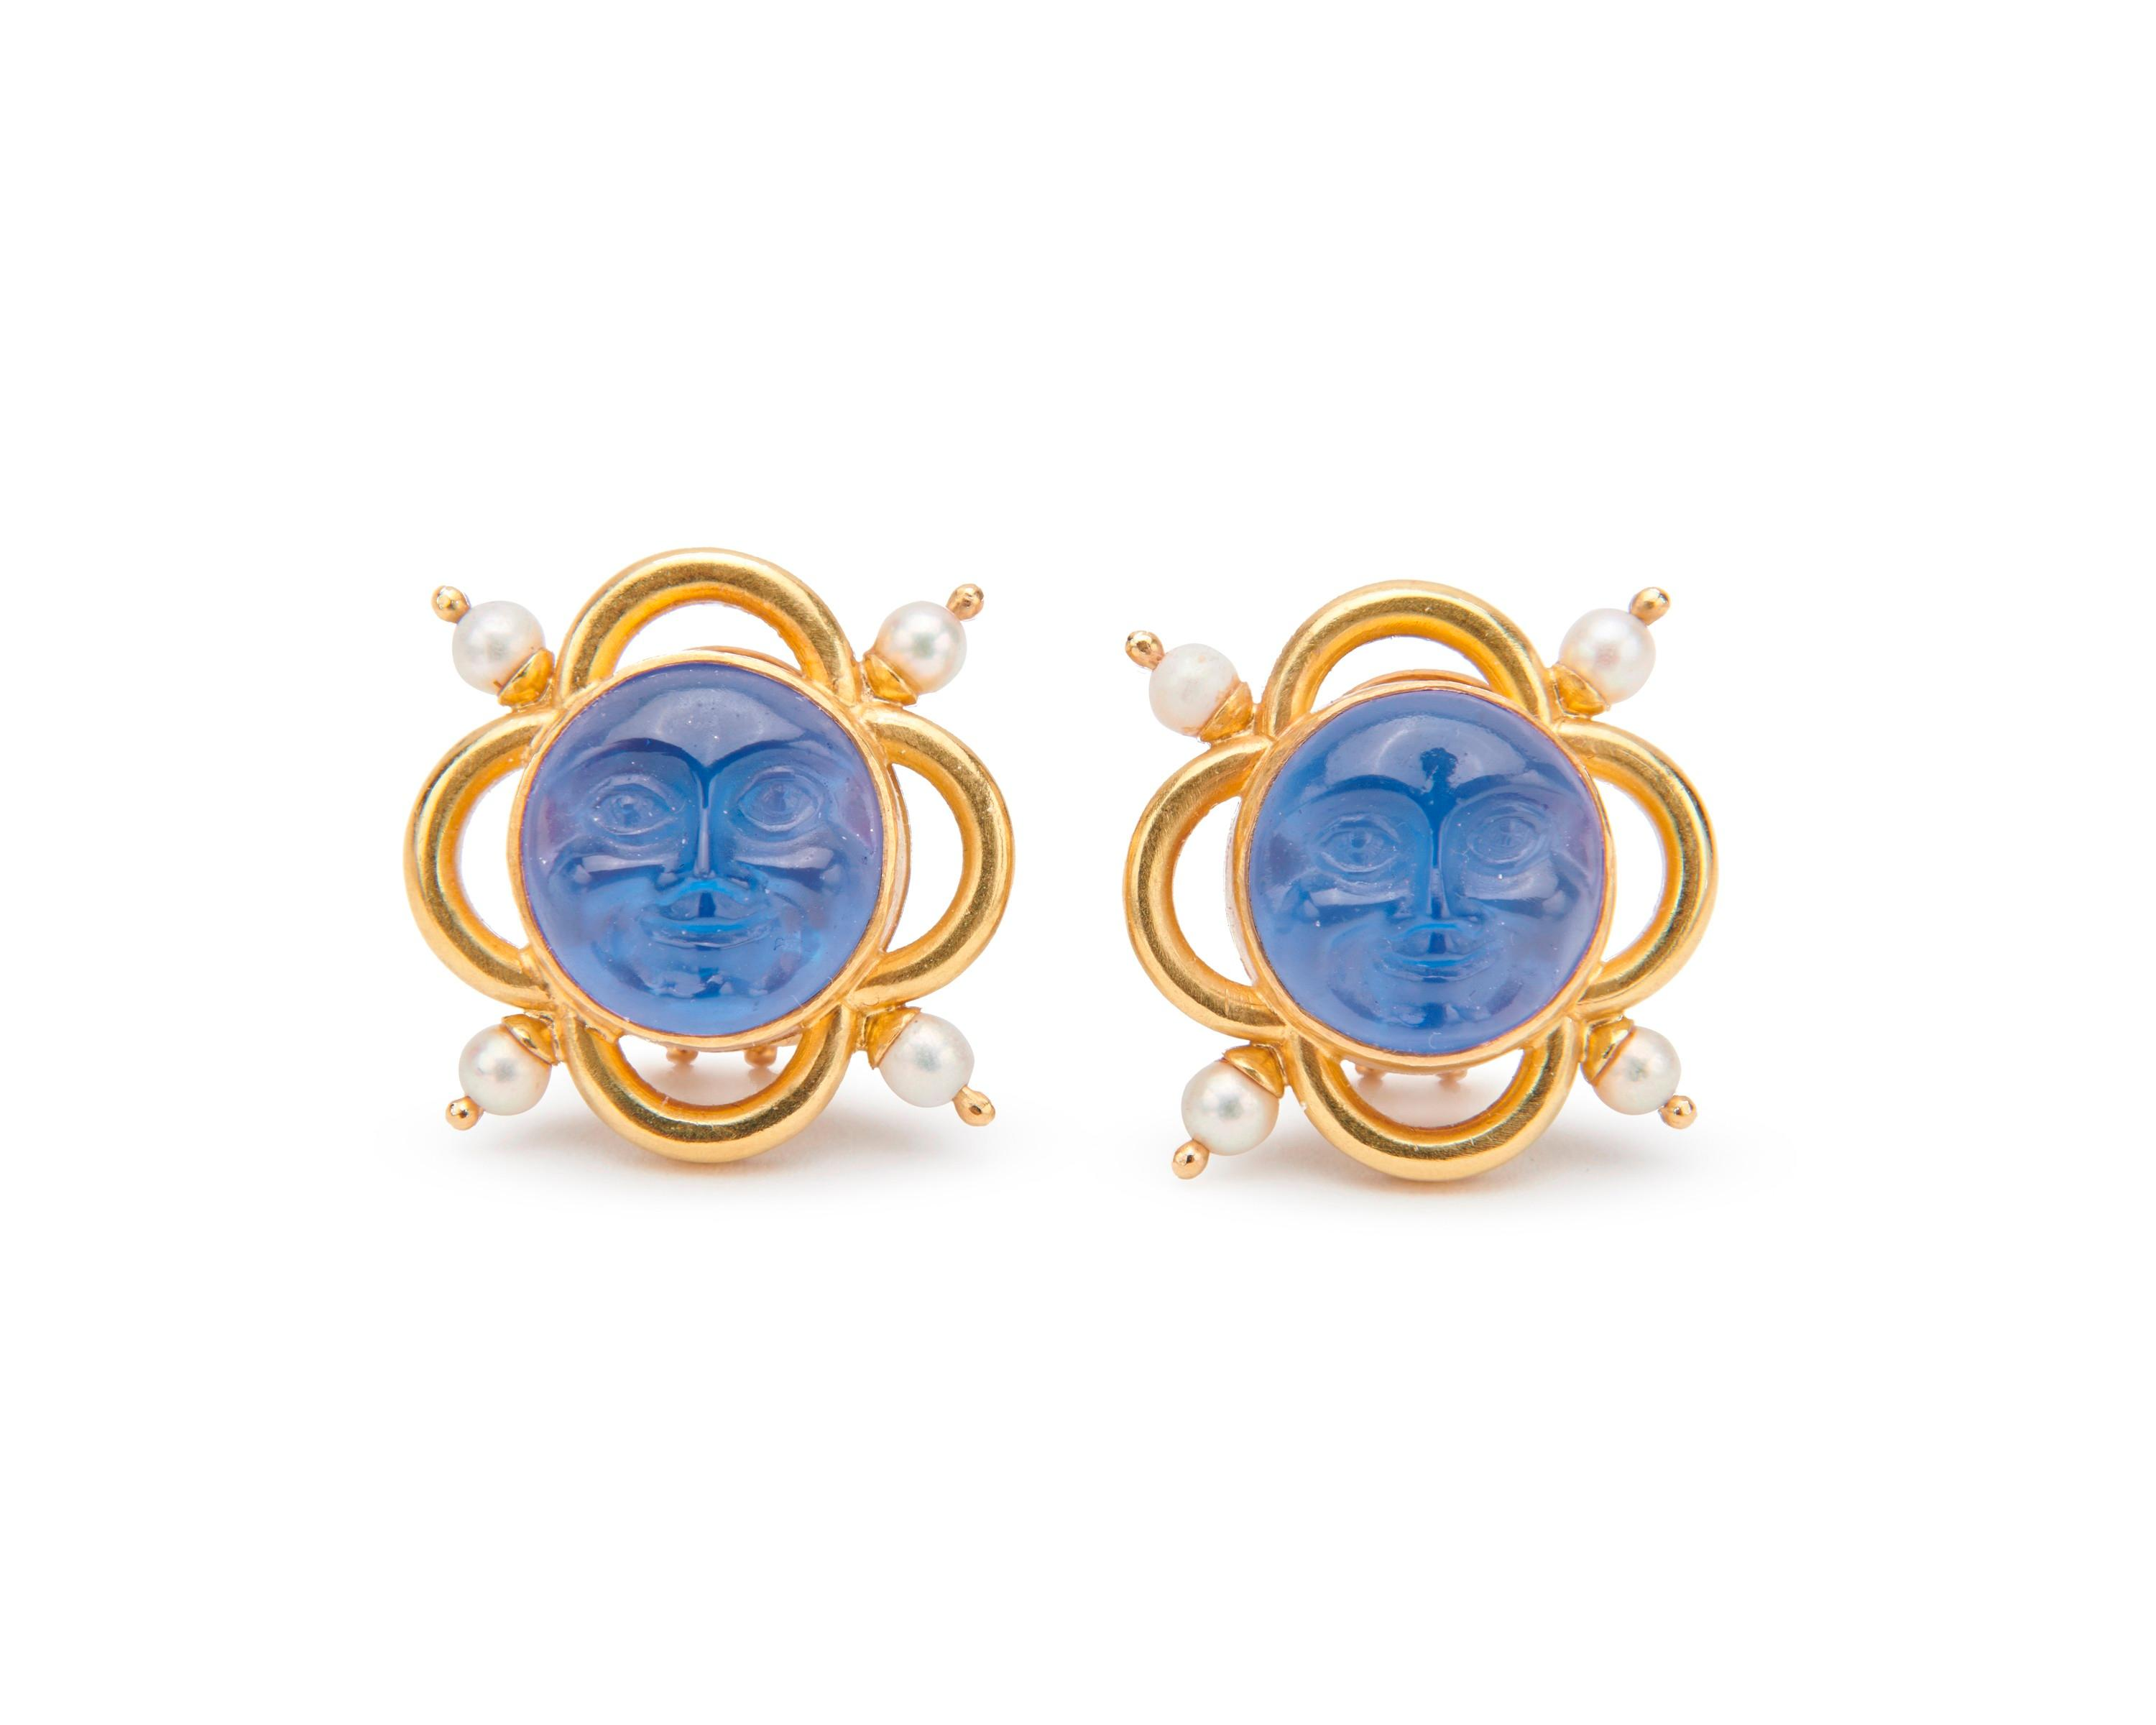 ELIZABETH LOCKE 18K Gold, Glass Intaglio, Mother-of-Pearl, and Pearl Earclips